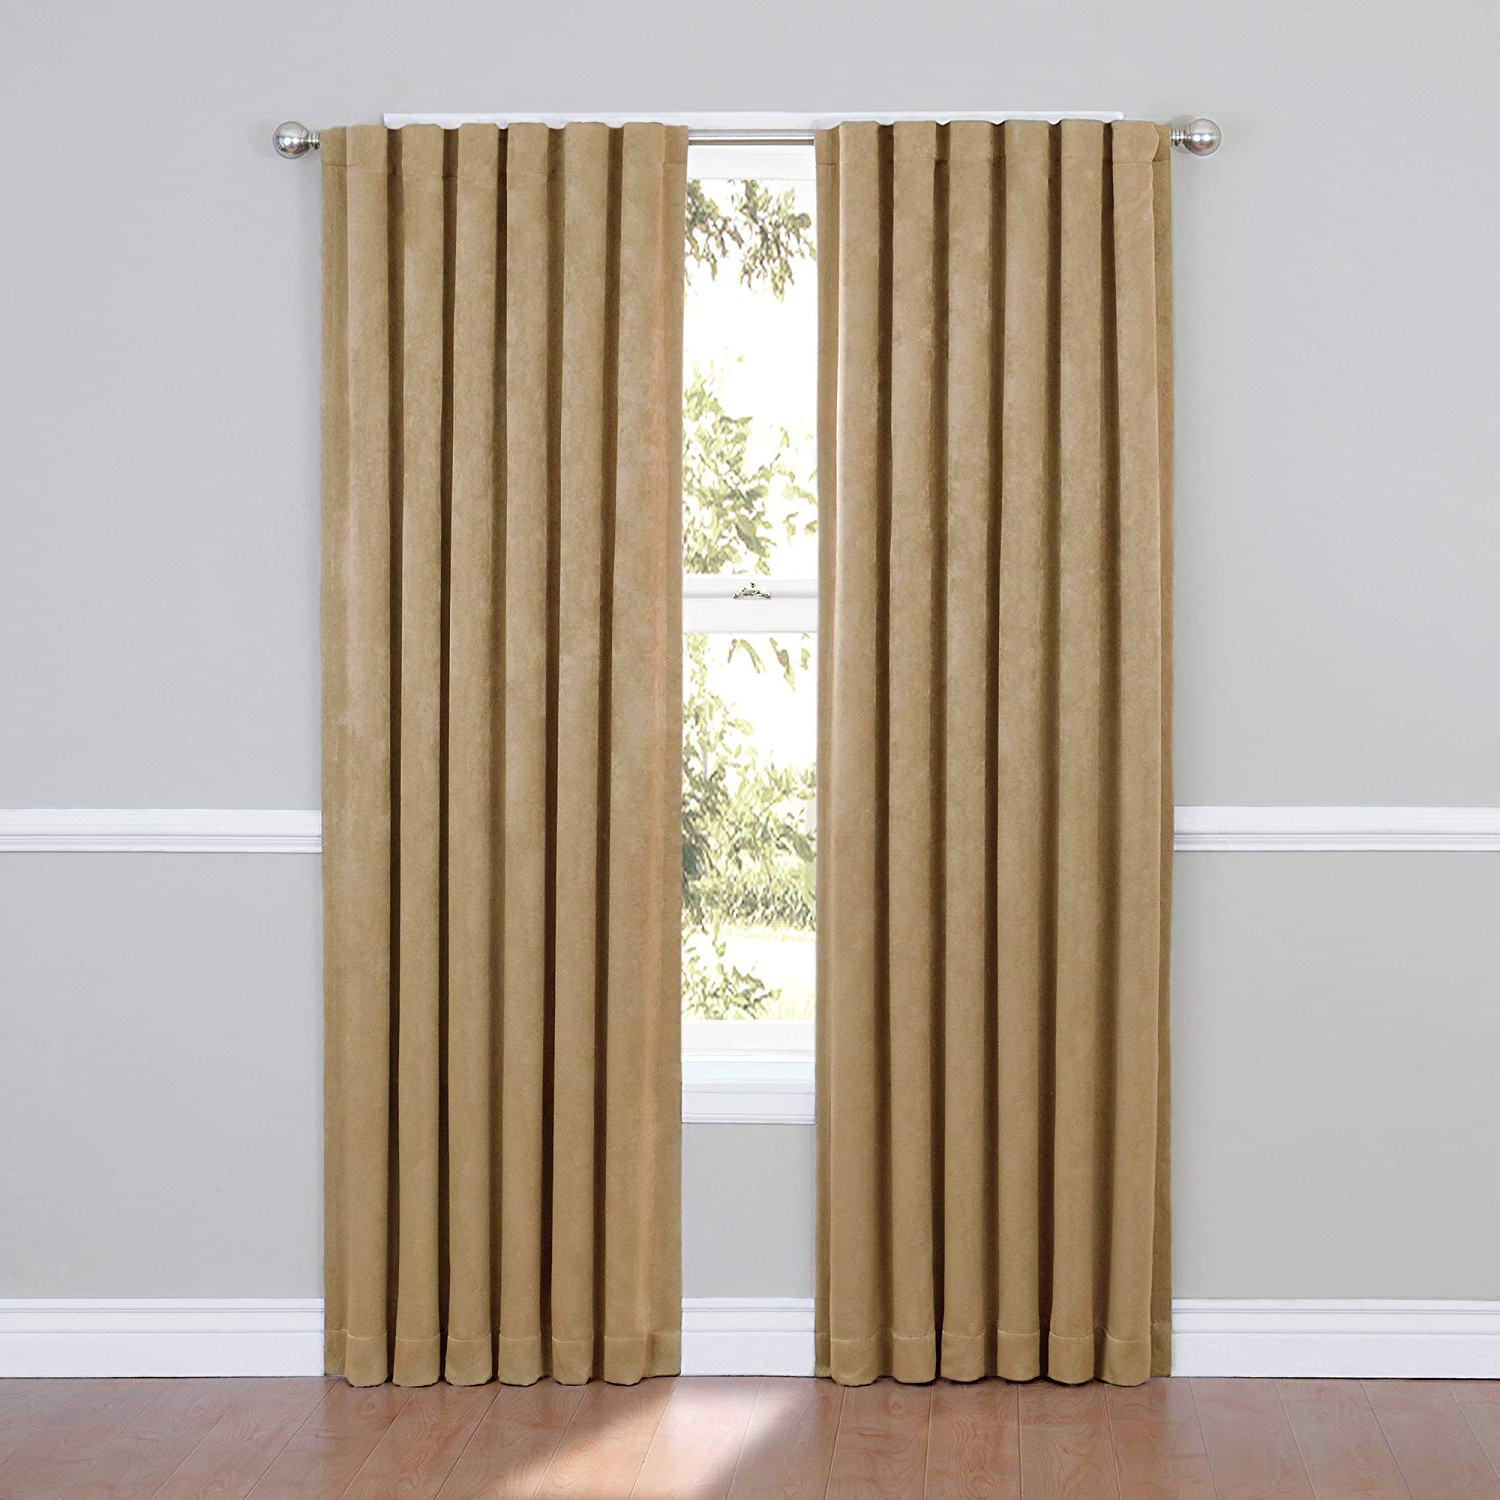 Eclipse Ella Blackout Window Curtain Panel, 95 Inch, Cafe Within 2021 Ella Window Curtain Panels (Gallery 20 of 20)